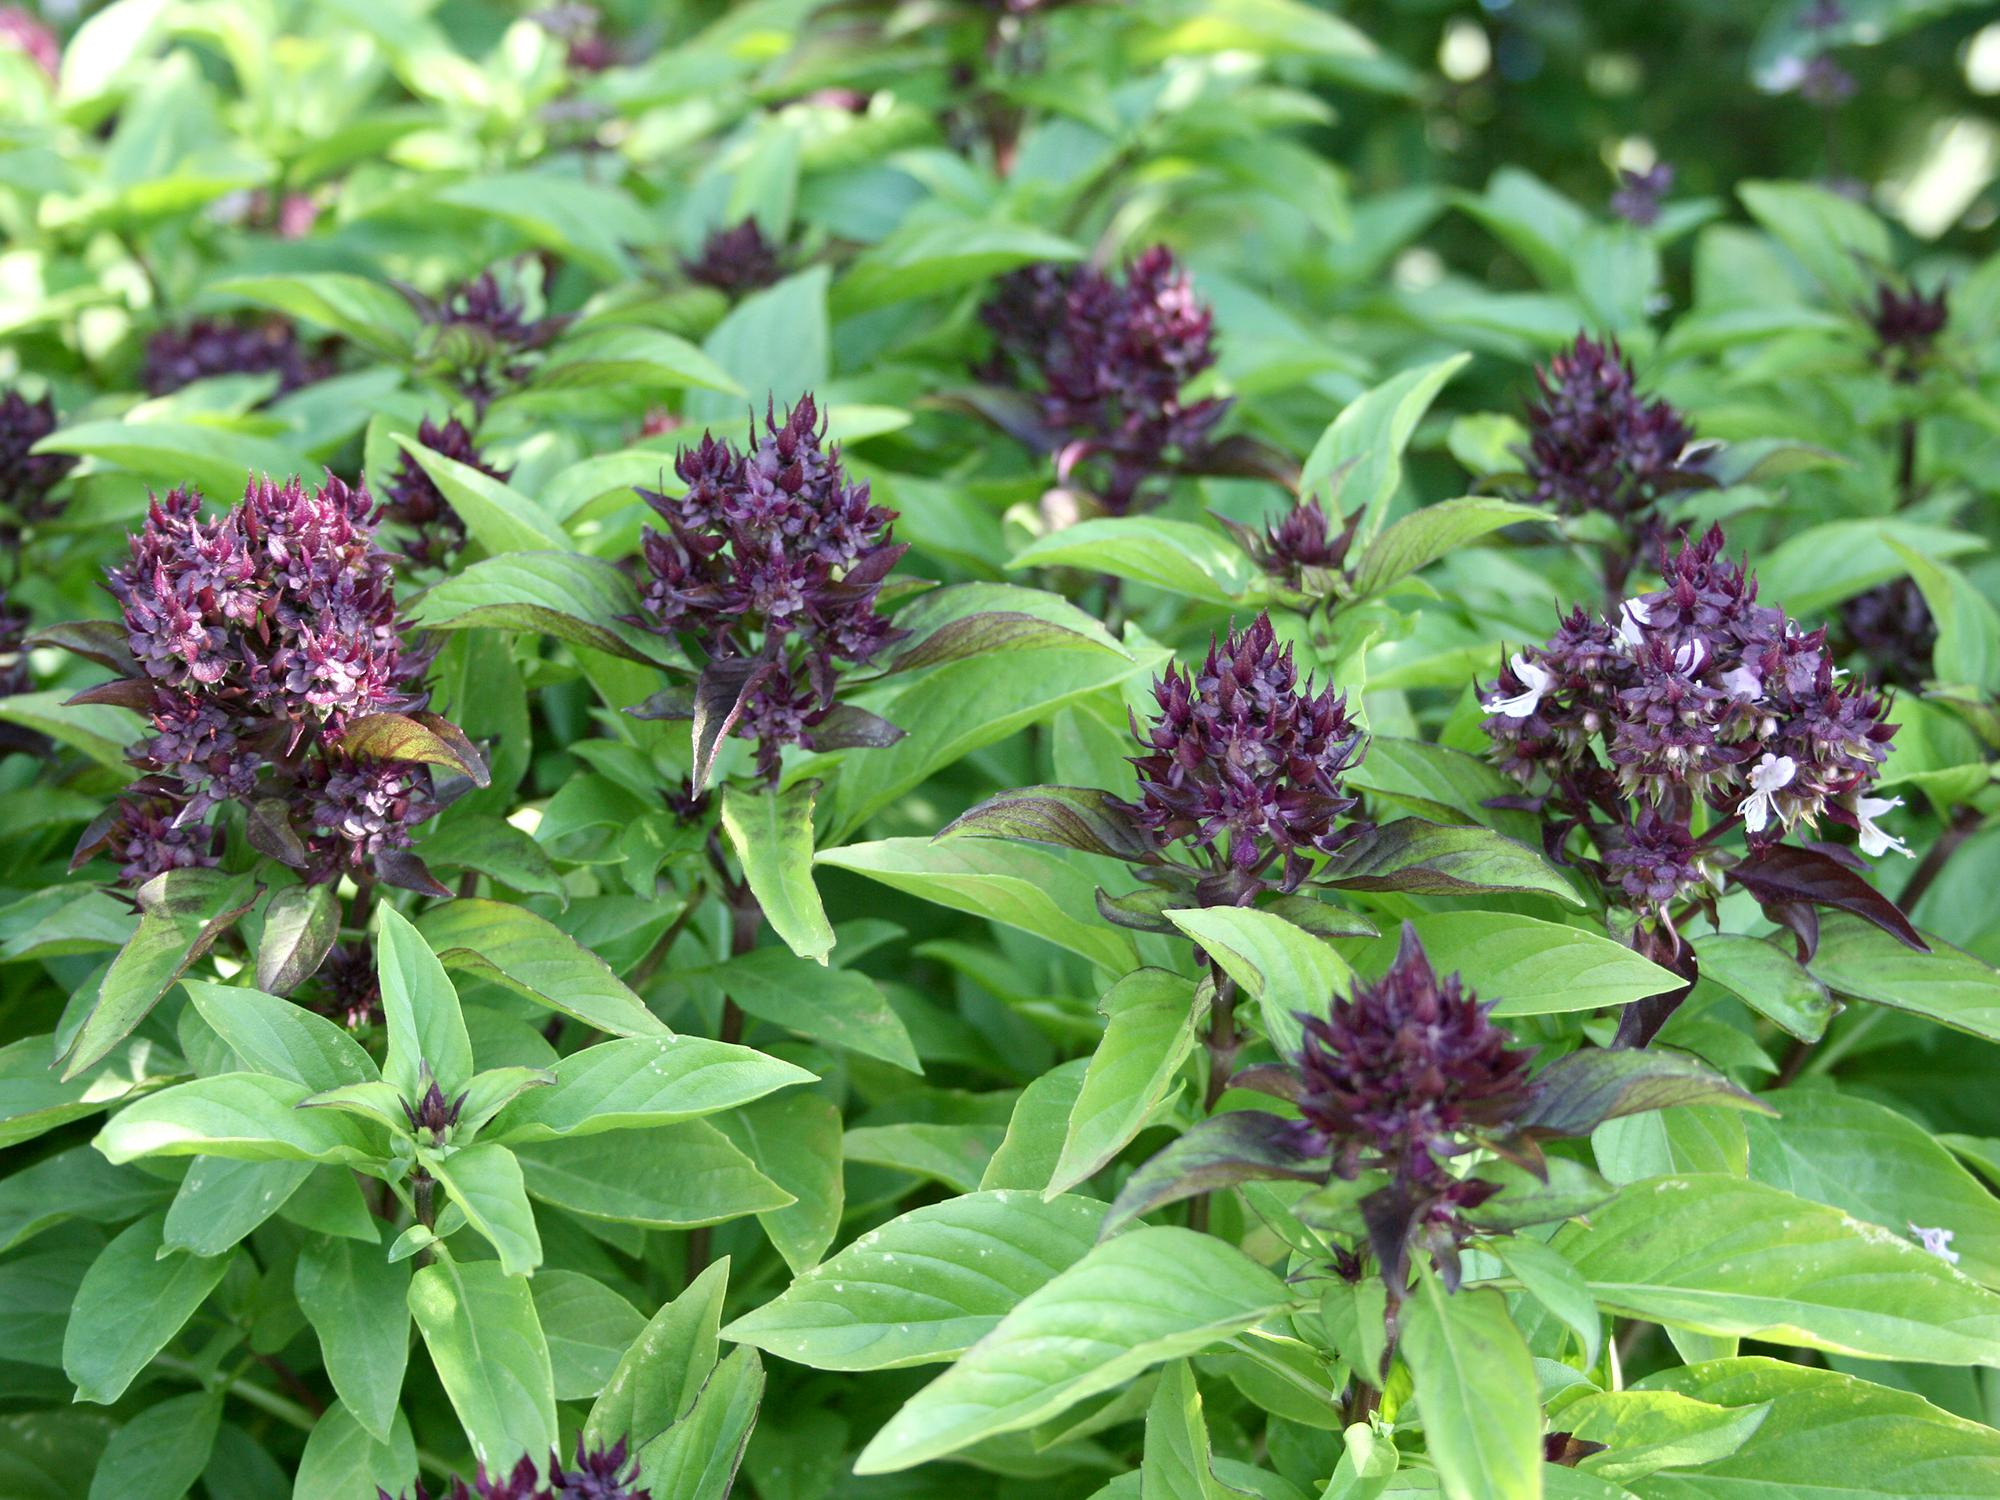 Siam Queen is a Thai basil with purple flowers and a licorice aroma and flavor (Photo by Gary Bachman/MSU Extension Service)